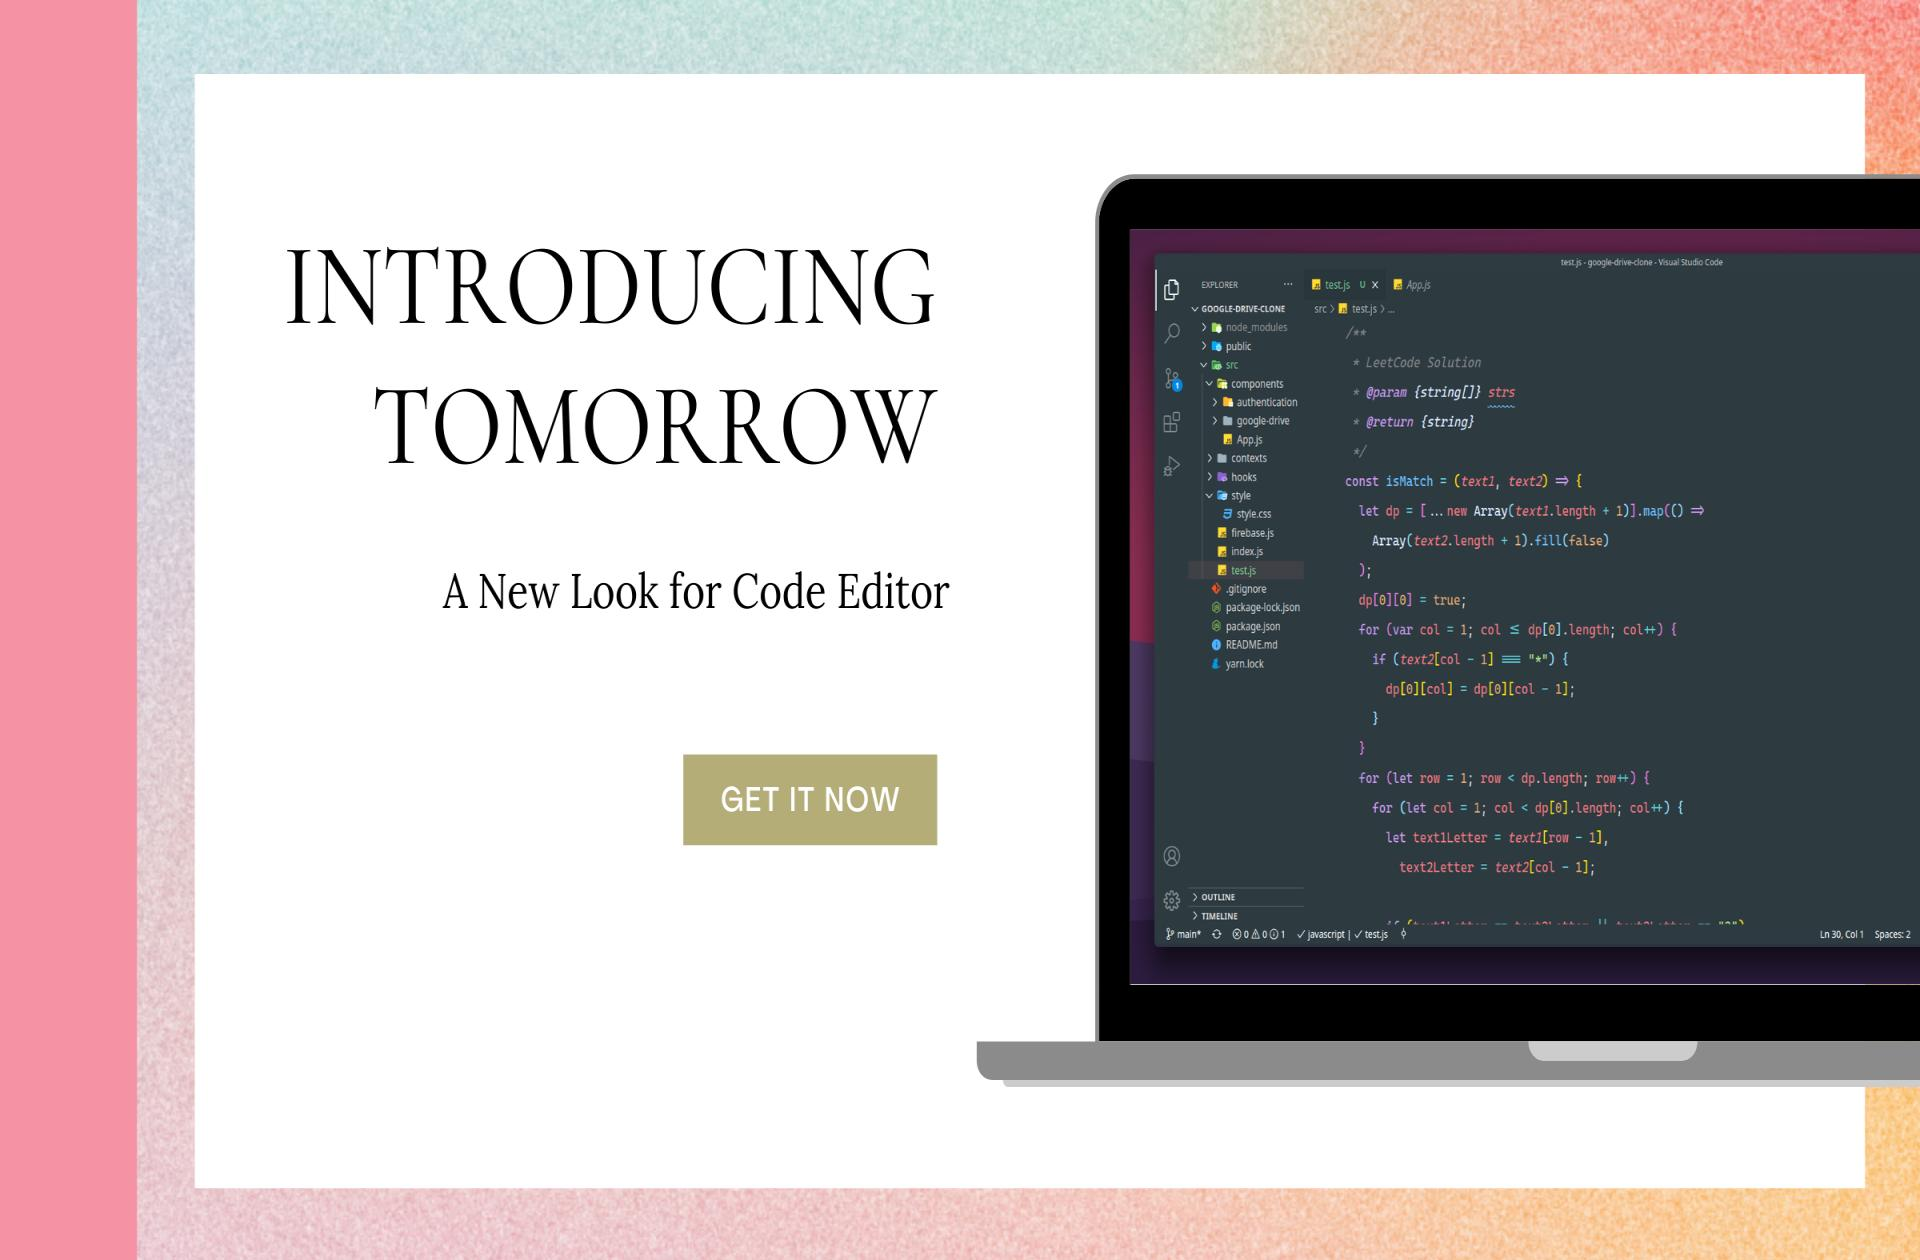 Introducing Tomorrow - A New Look for Code Editor